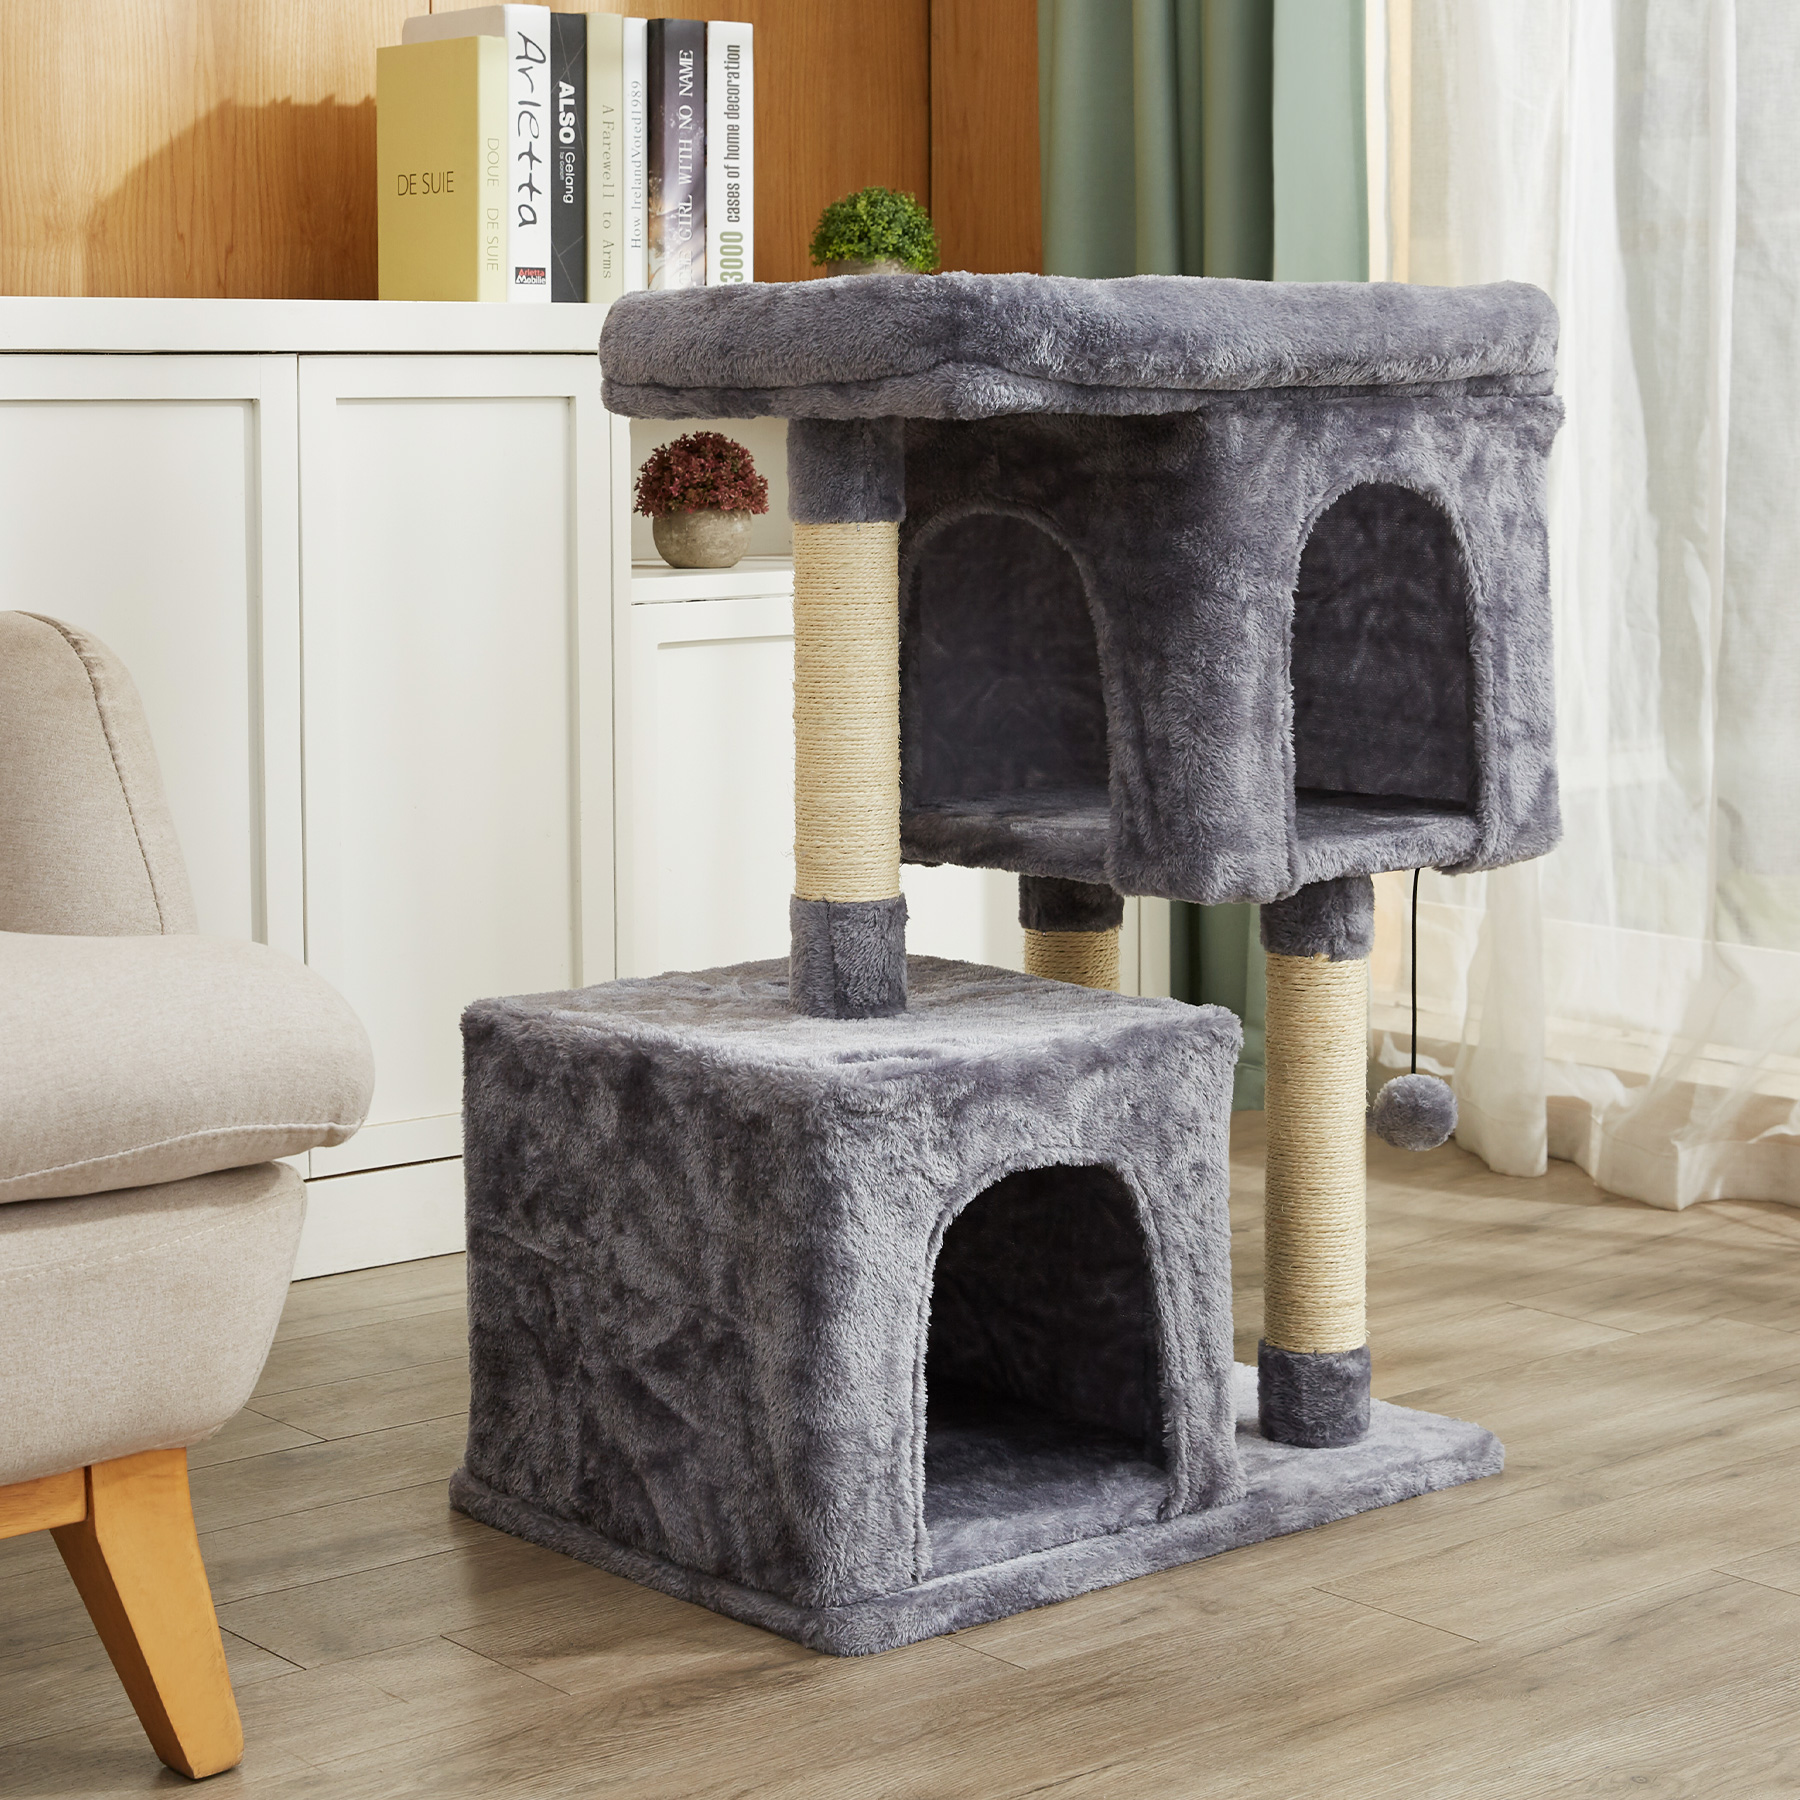 2 Big Condo House For Multiple Large Cats Indoor With Jungle Gym Cat Toy 3 Tiers Walmart Canada